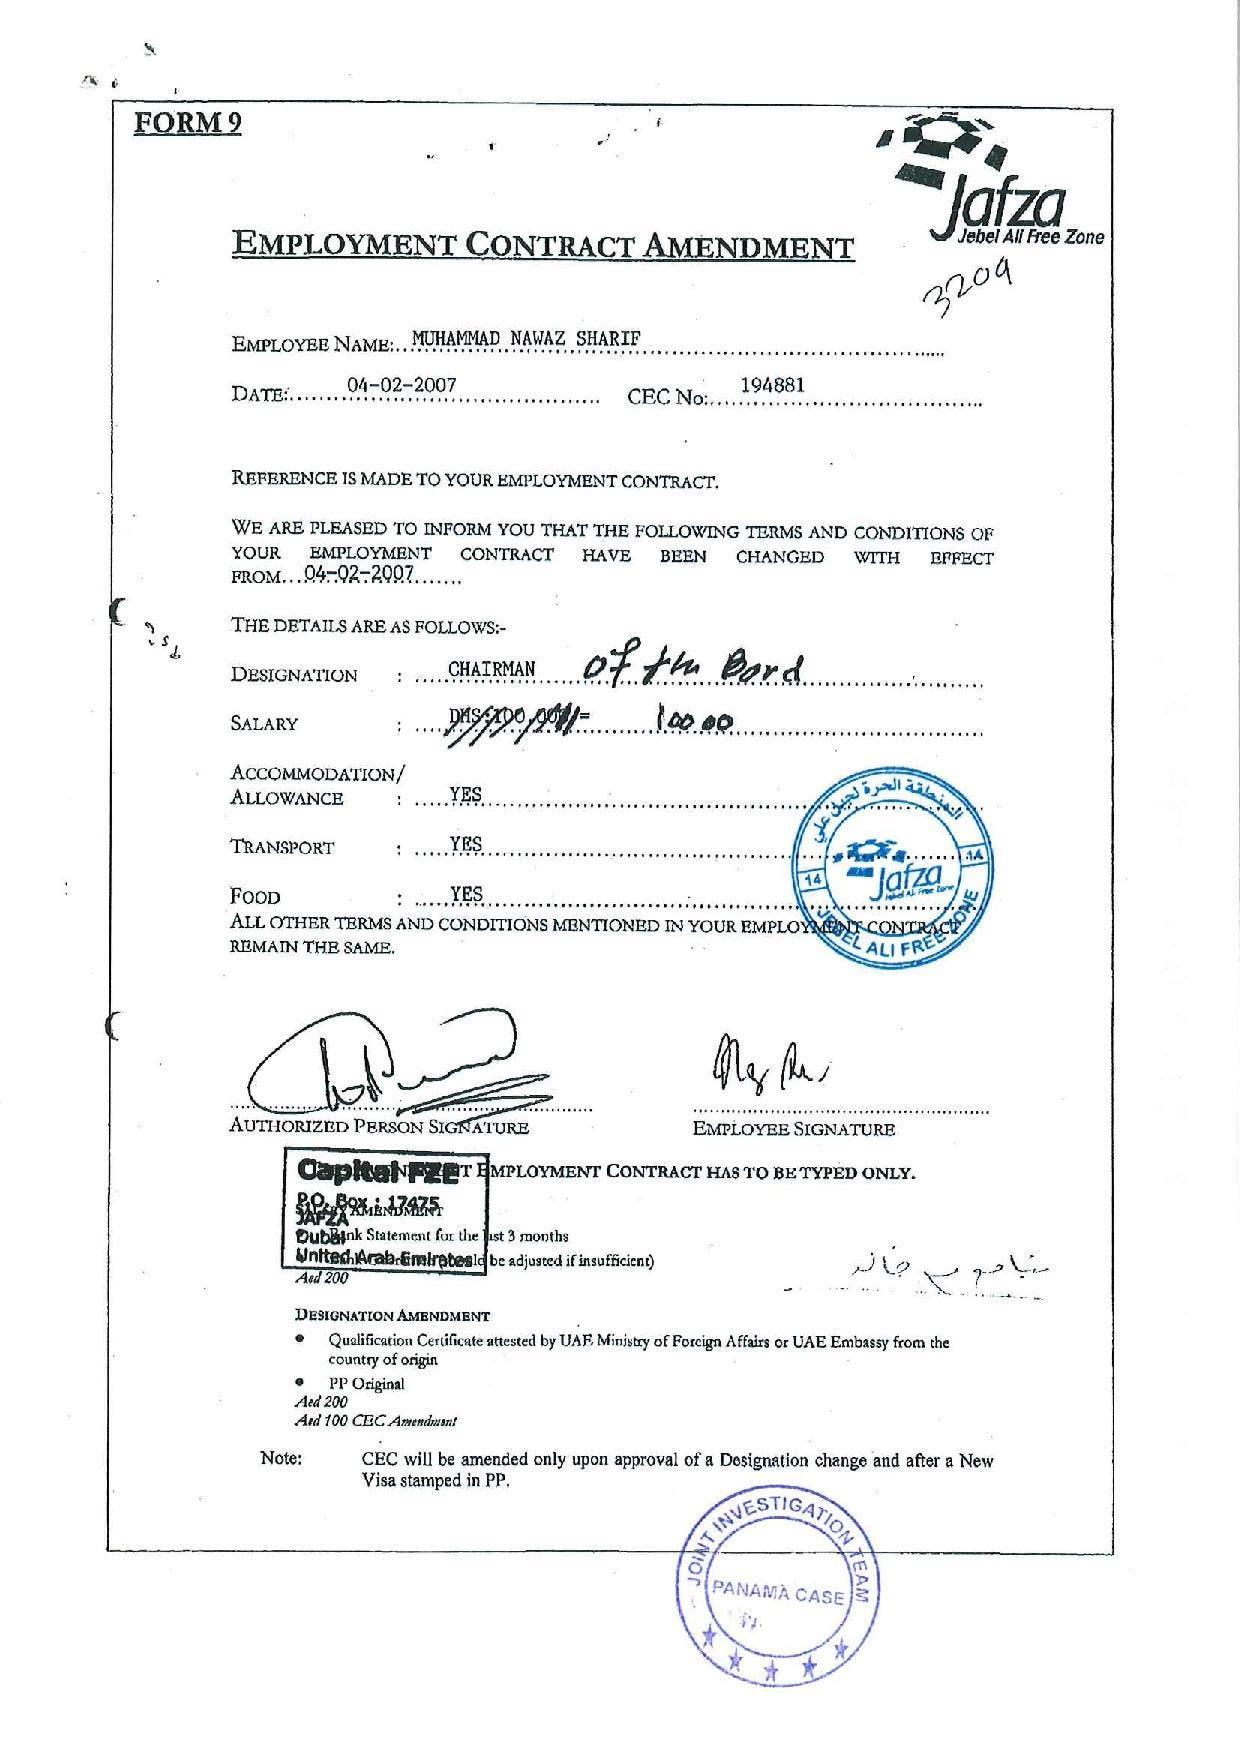 Documents show Nawaz Sharif listed as UAE employee while serving as Pakistan PM